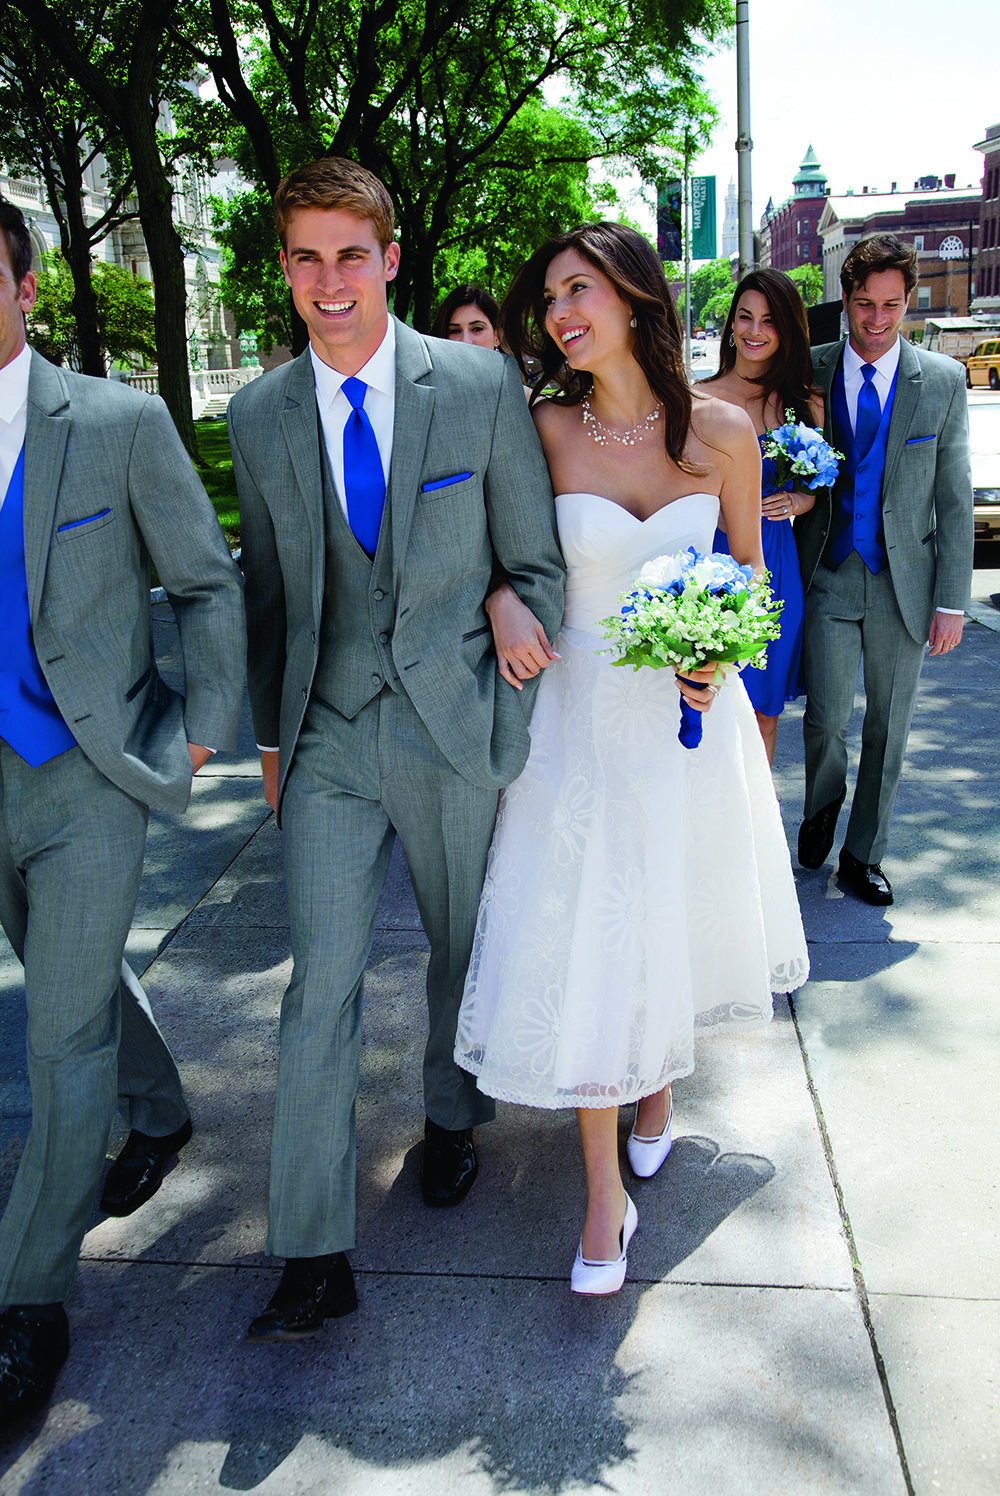 Groom Trends Spring and Summer Colors by Jos. A. Bank's